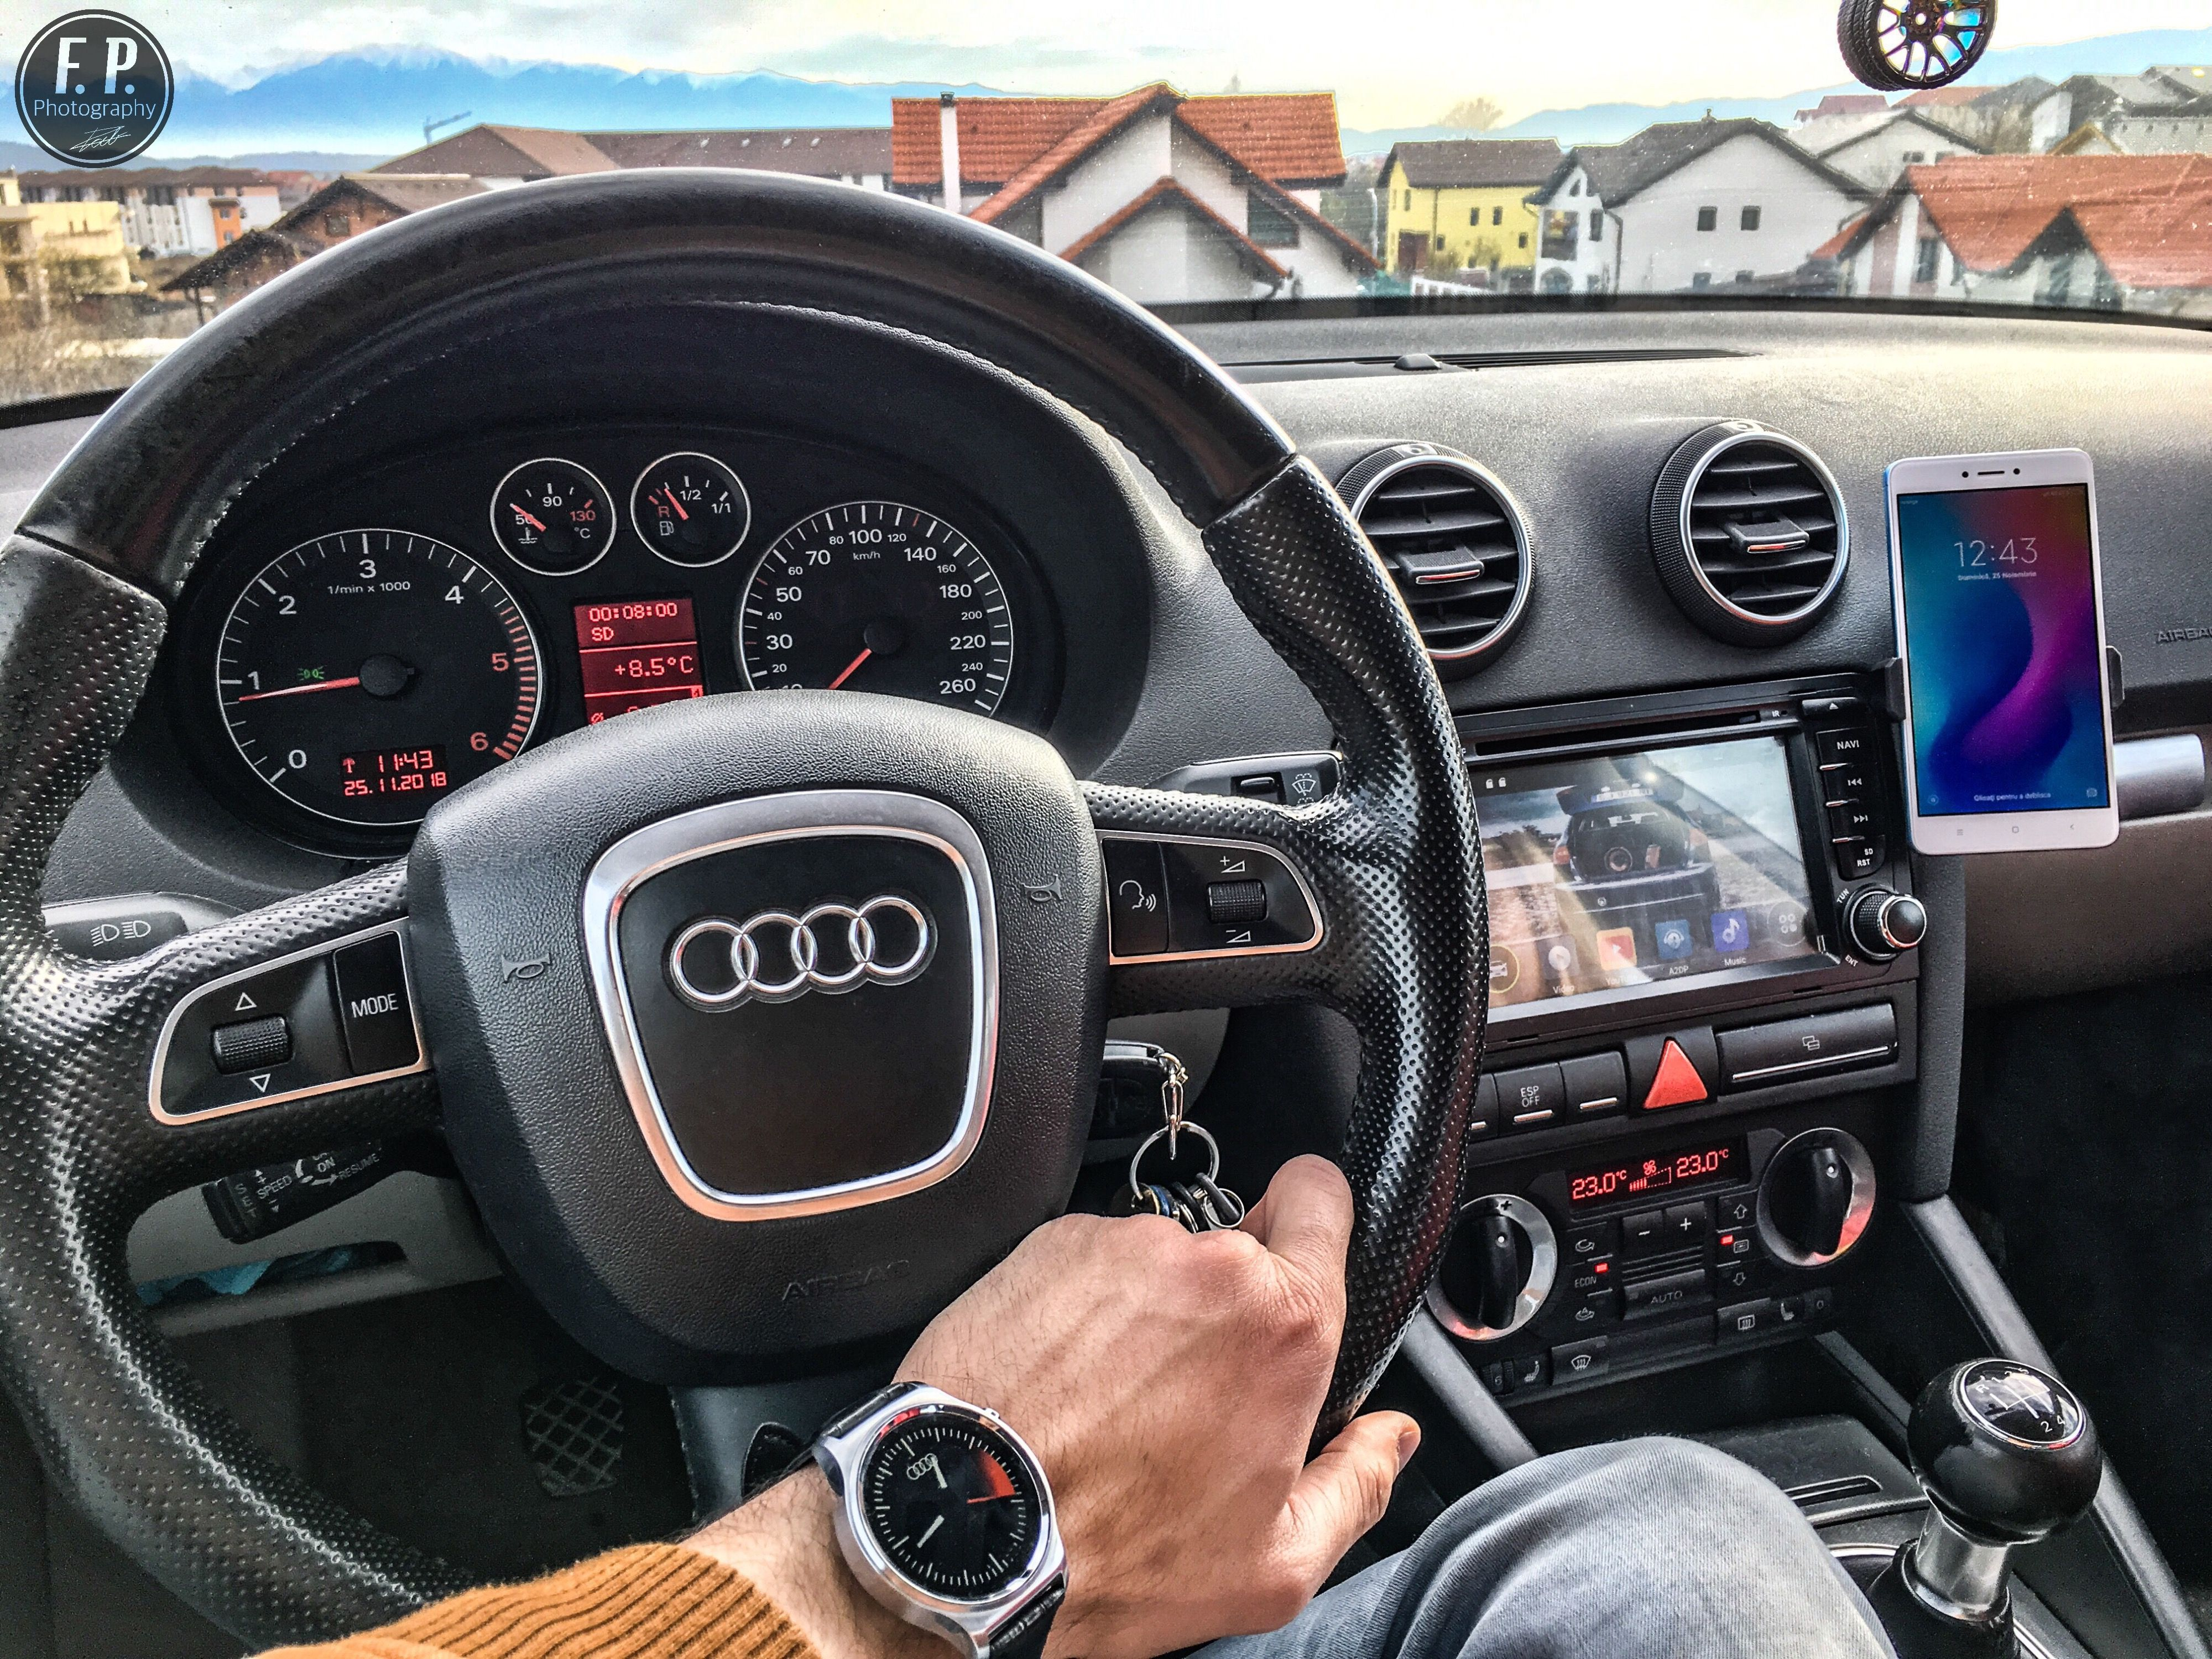 audi a3 8p sportback interior tuning awesome pic. Black Bedroom Furniture Sets. Home Design Ideas